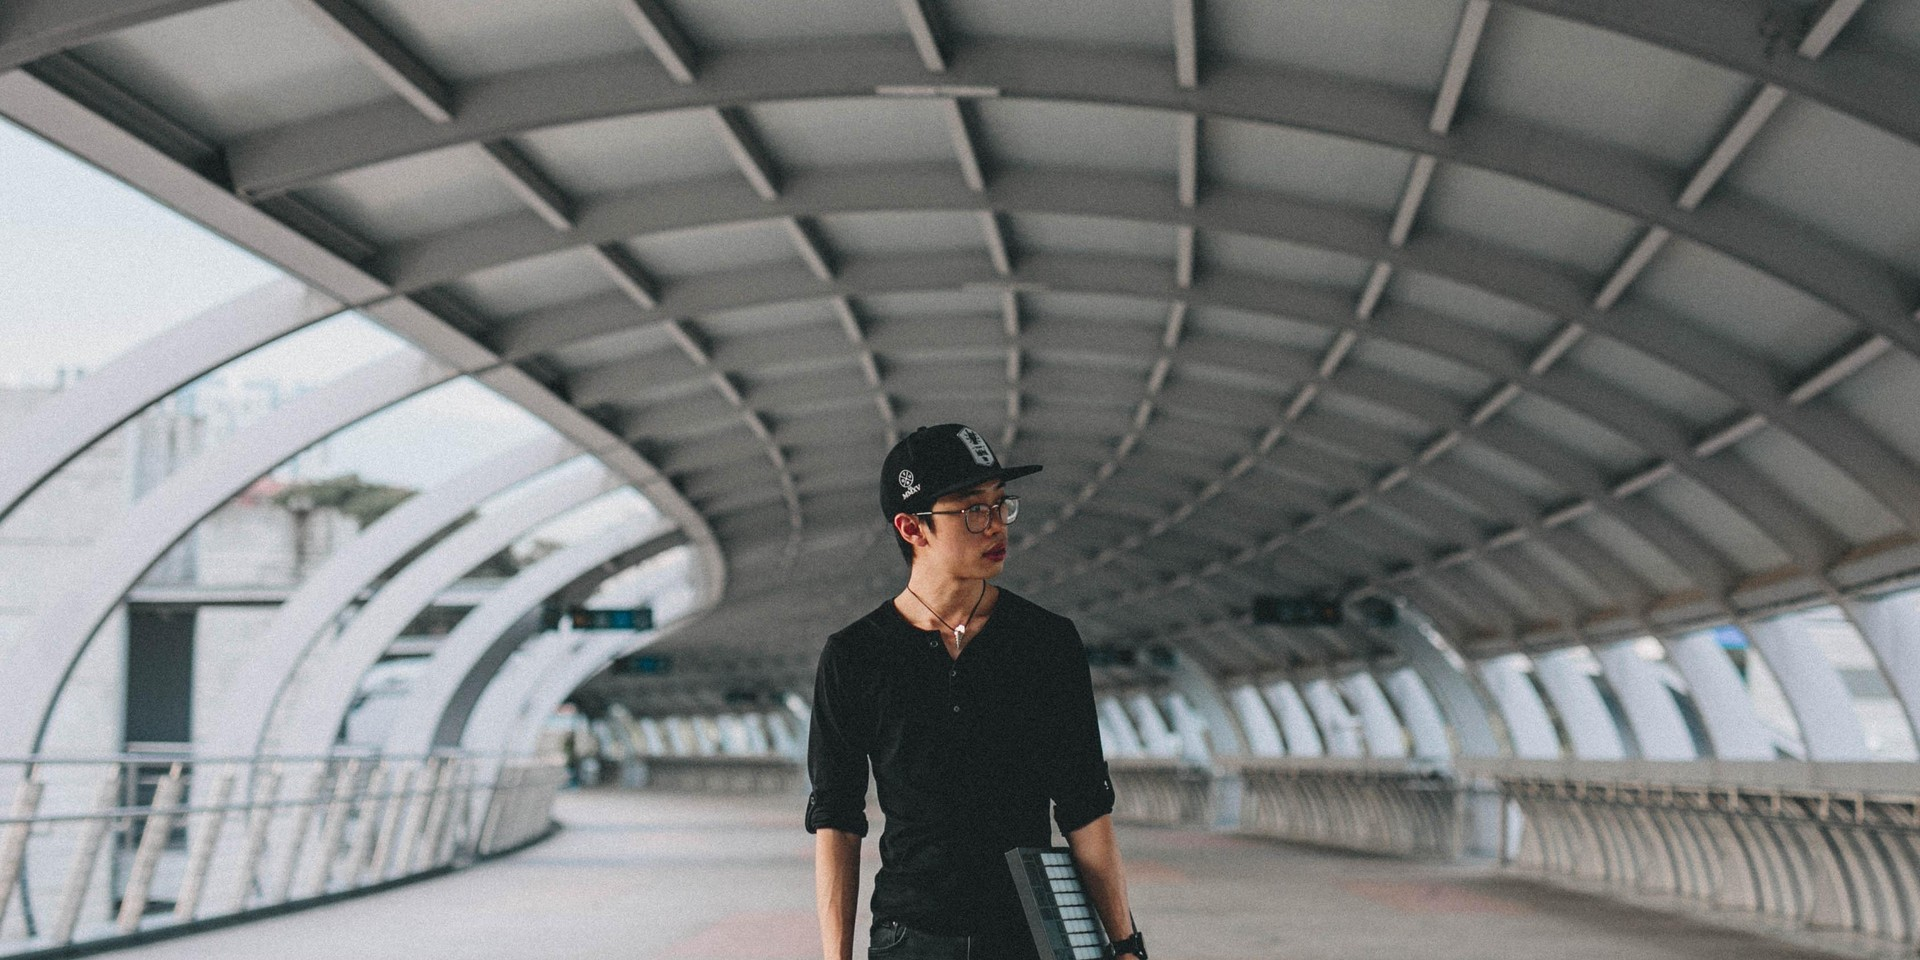 Calling all producers: Evanturetime and MTV Asia are holding a remix contest for his upcoming EP